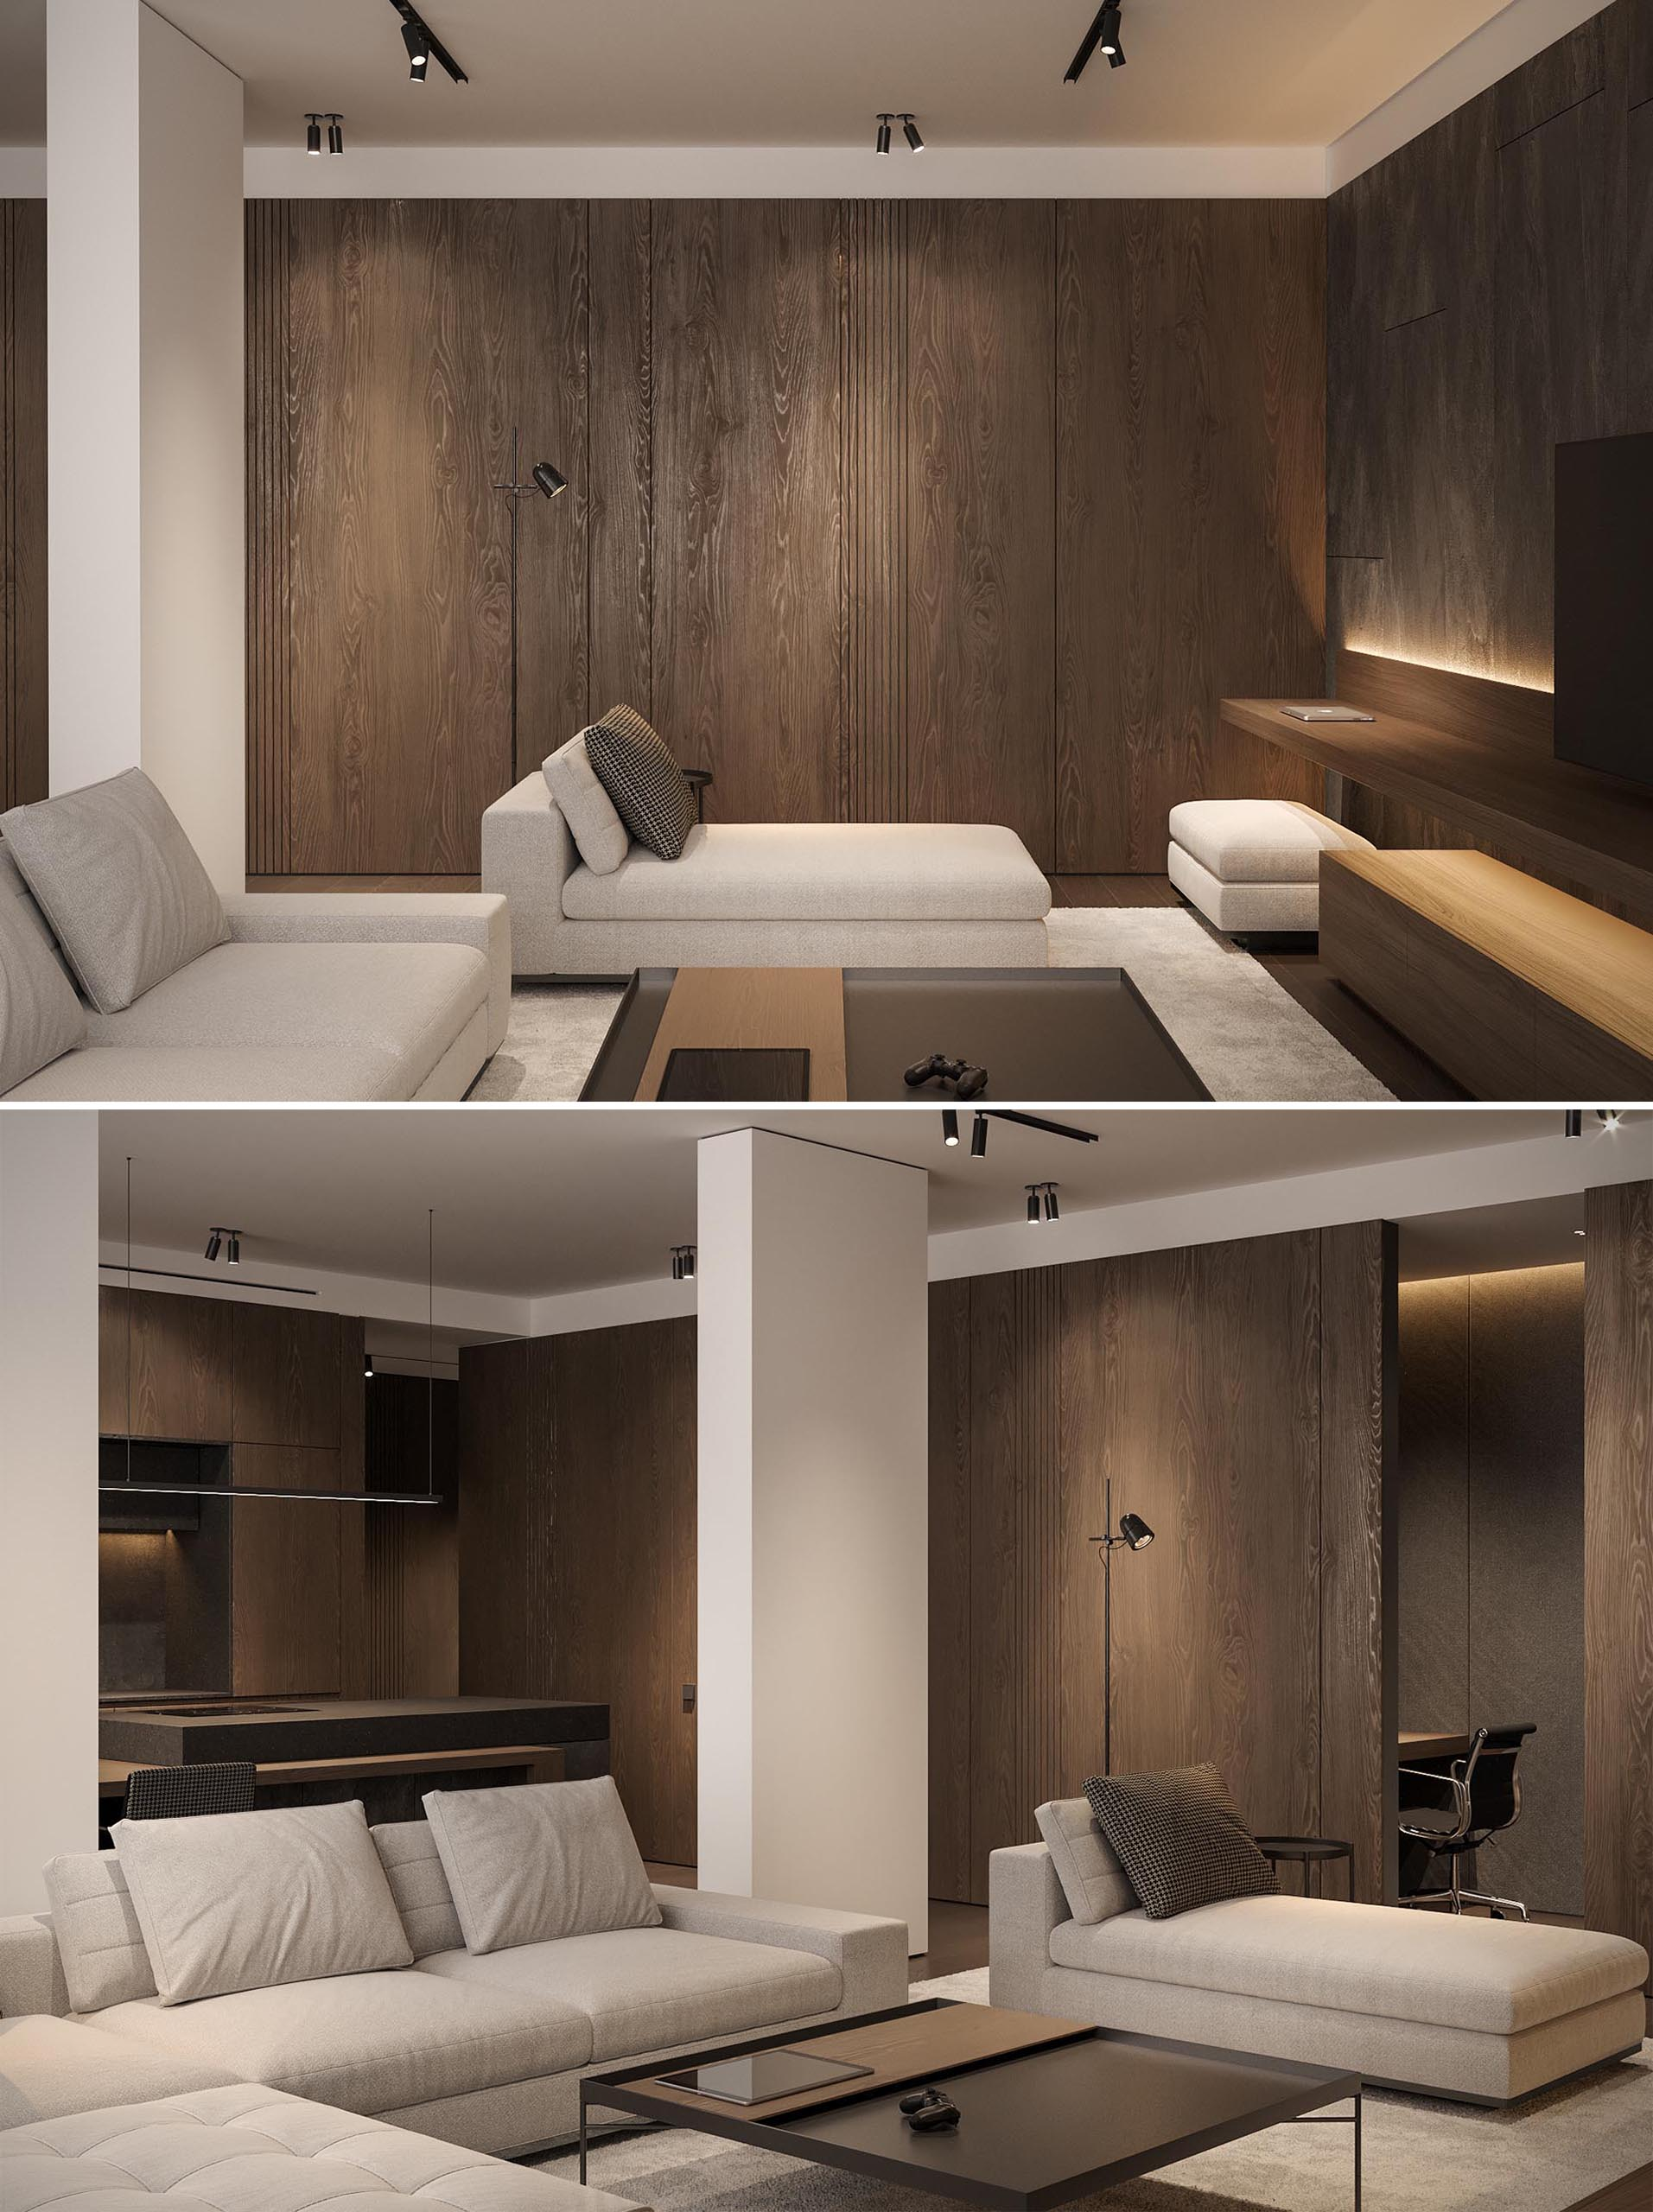 A small home office with a built-in desk is hidden behind a wood panel wall in the living room.